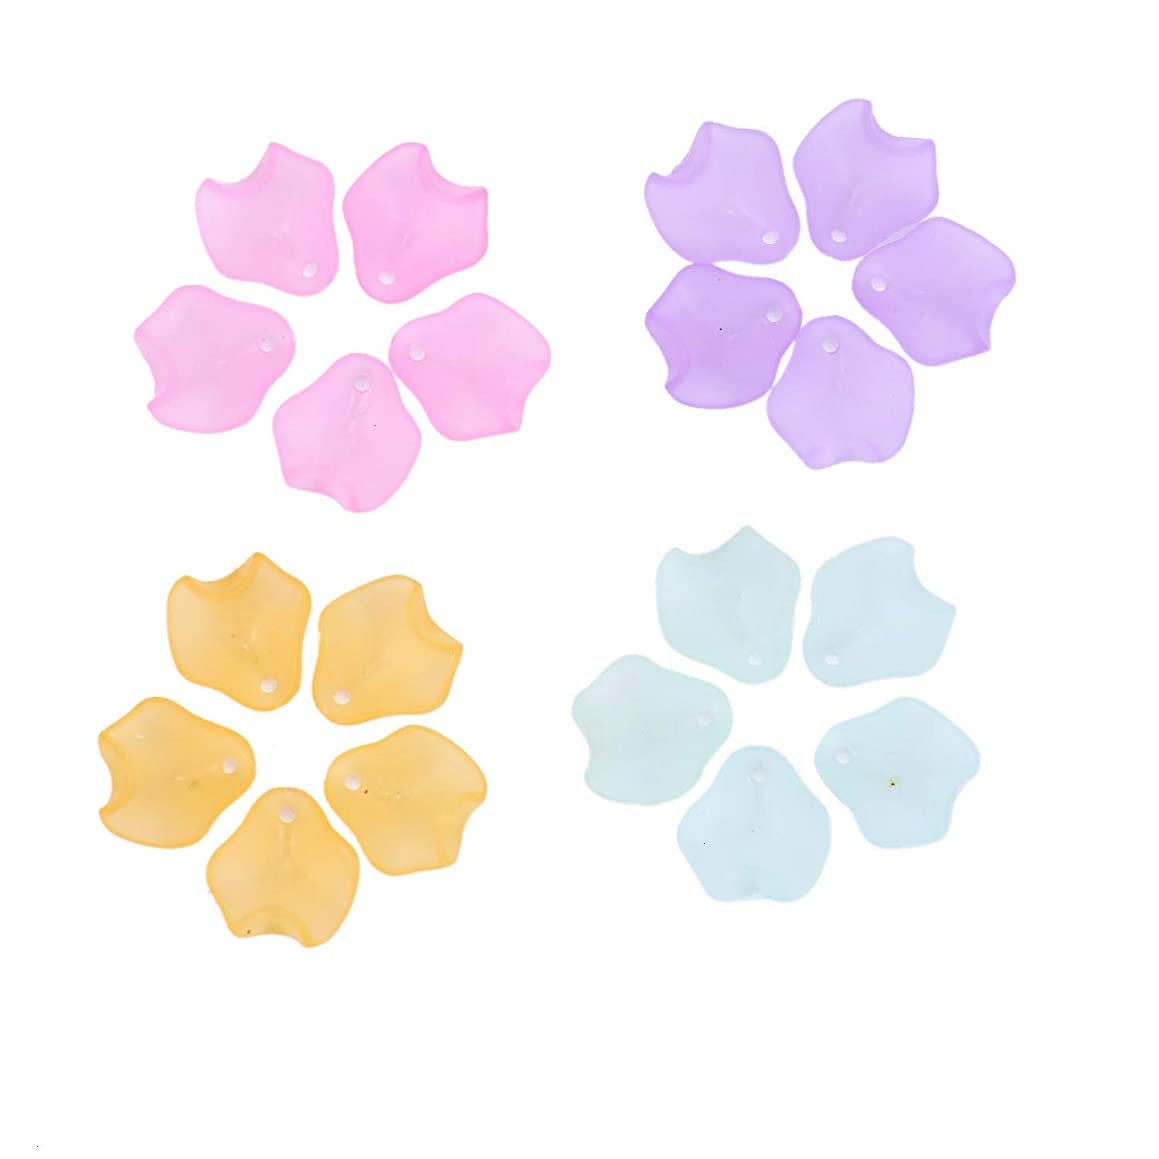 Monrocco 200 PCS 15MM Multicolor Acrylic Petals Plastic Leaf with Hole for Jewelry Making DIY Craft